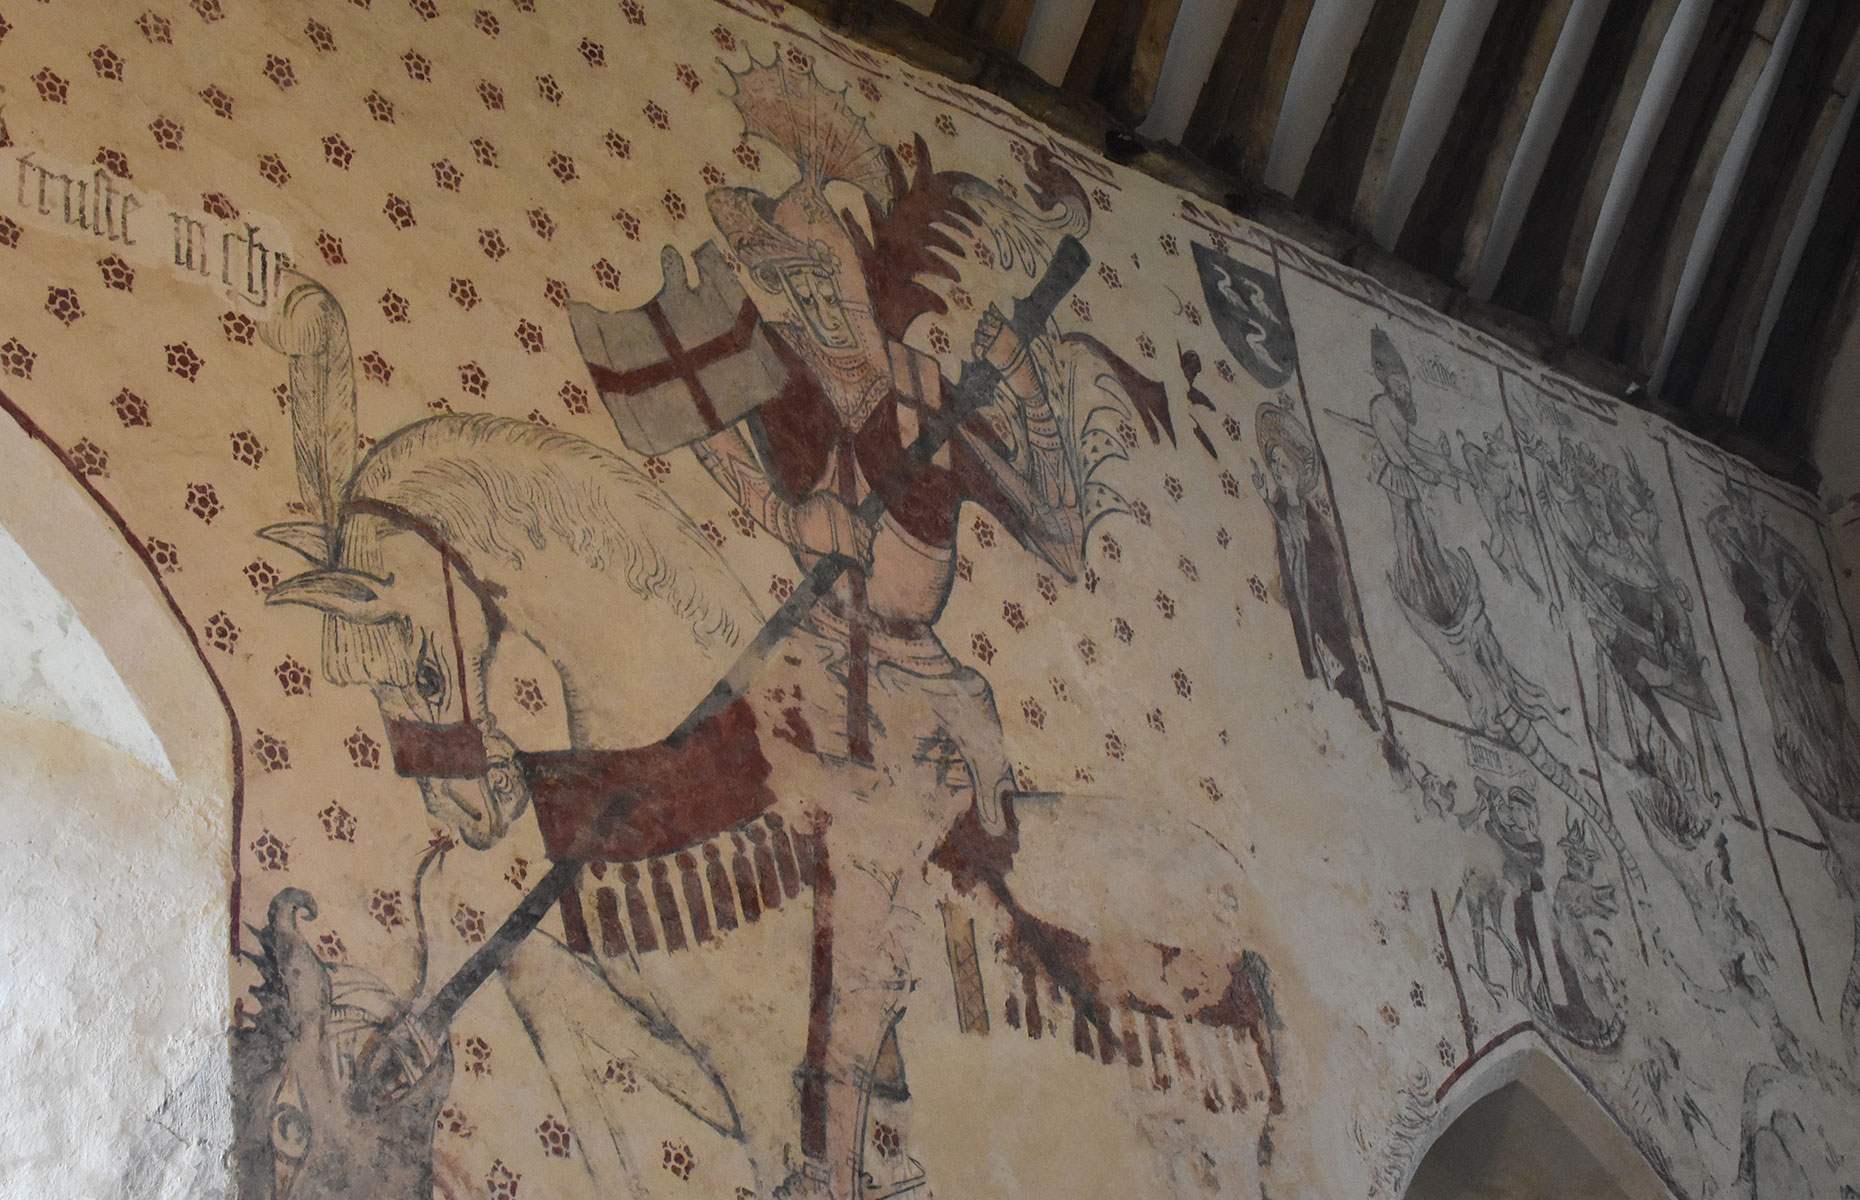 St Cadoc's Church with medieval artwork from the 1480s